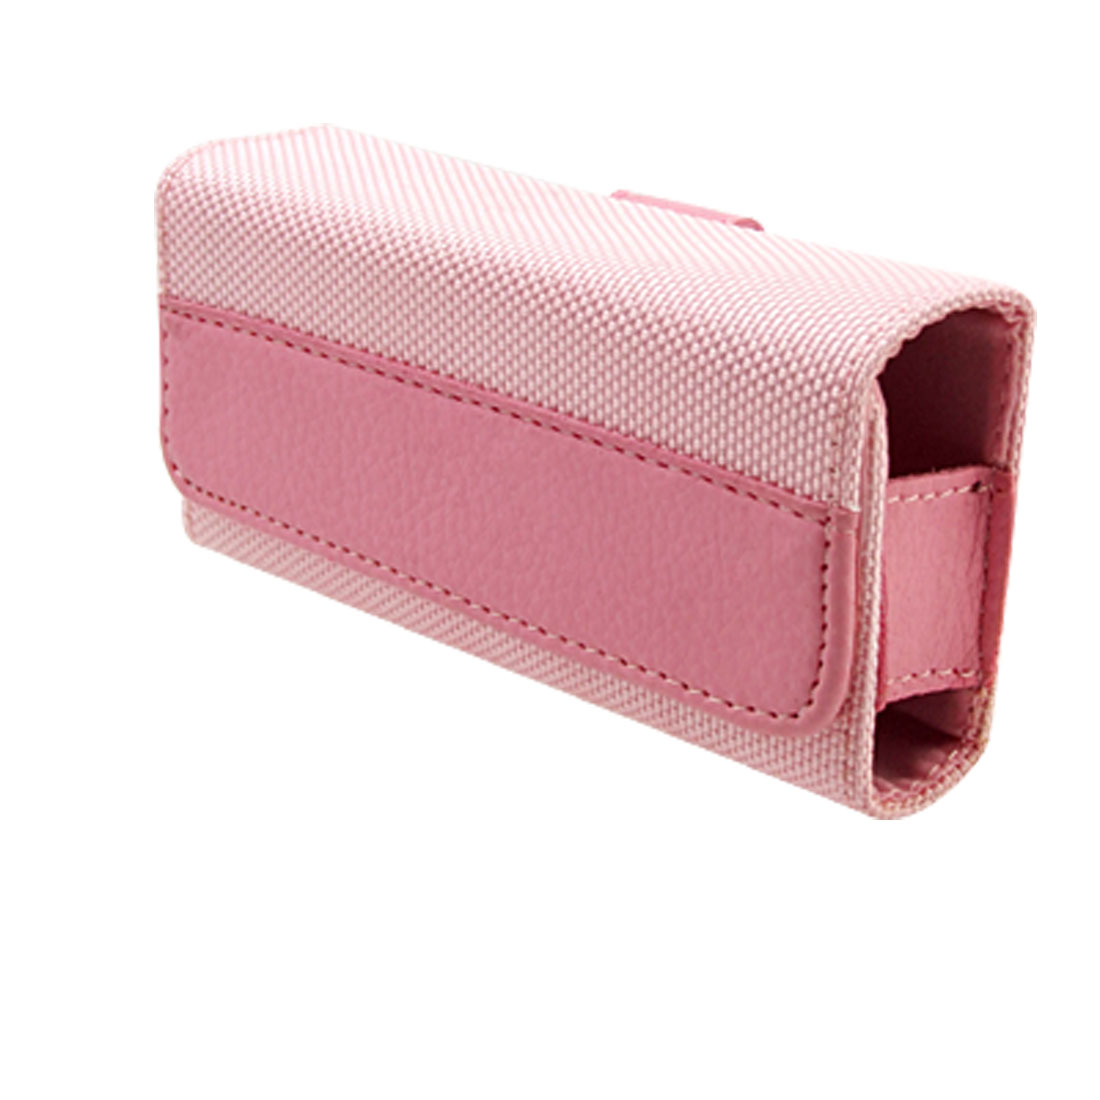 Leather & Nylon Case Holder + Strap for Nokia 7610 - Pink